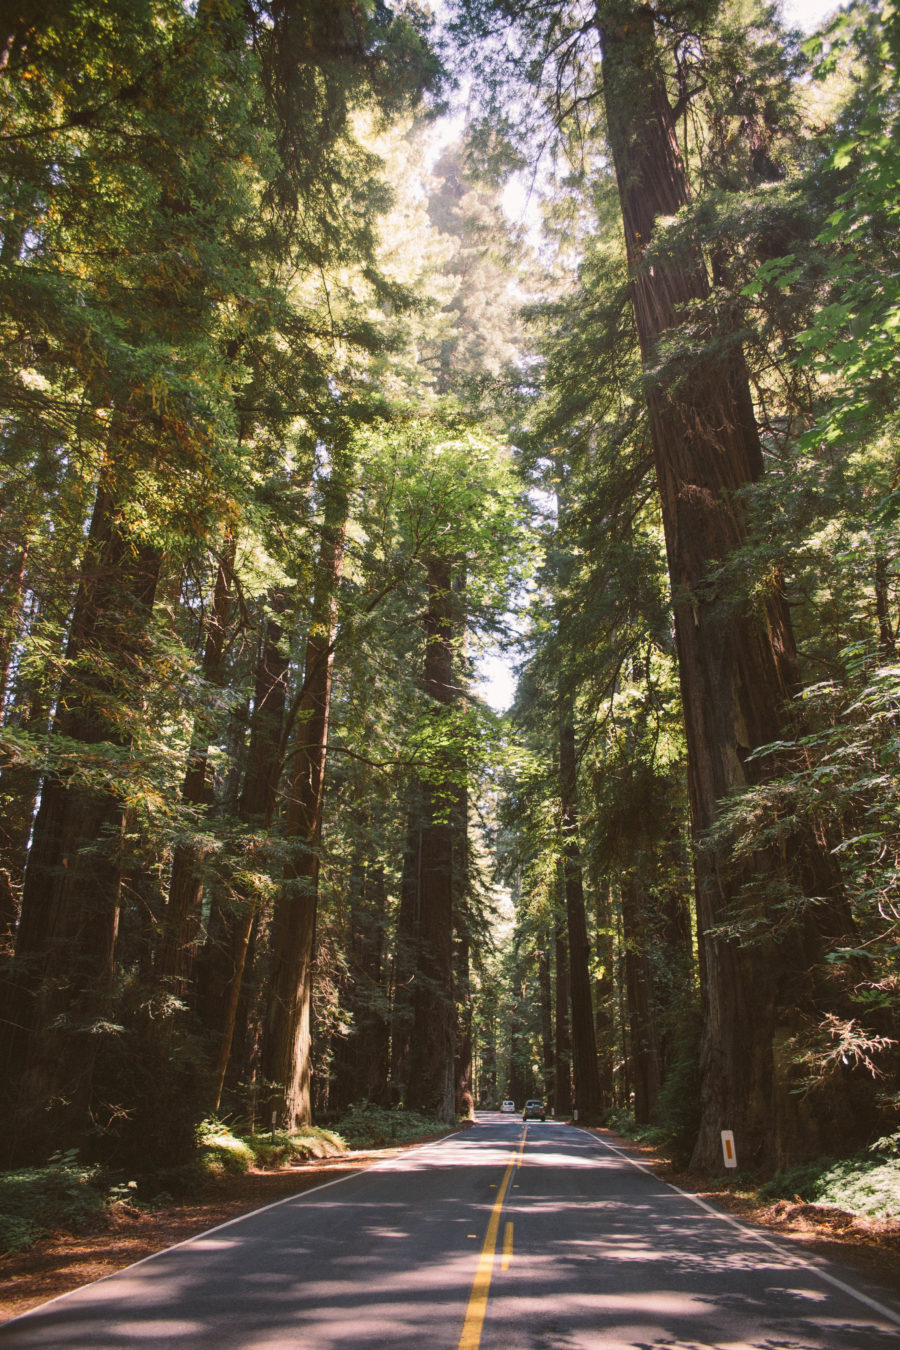 PNW Road Trip Avenue of the Giants California